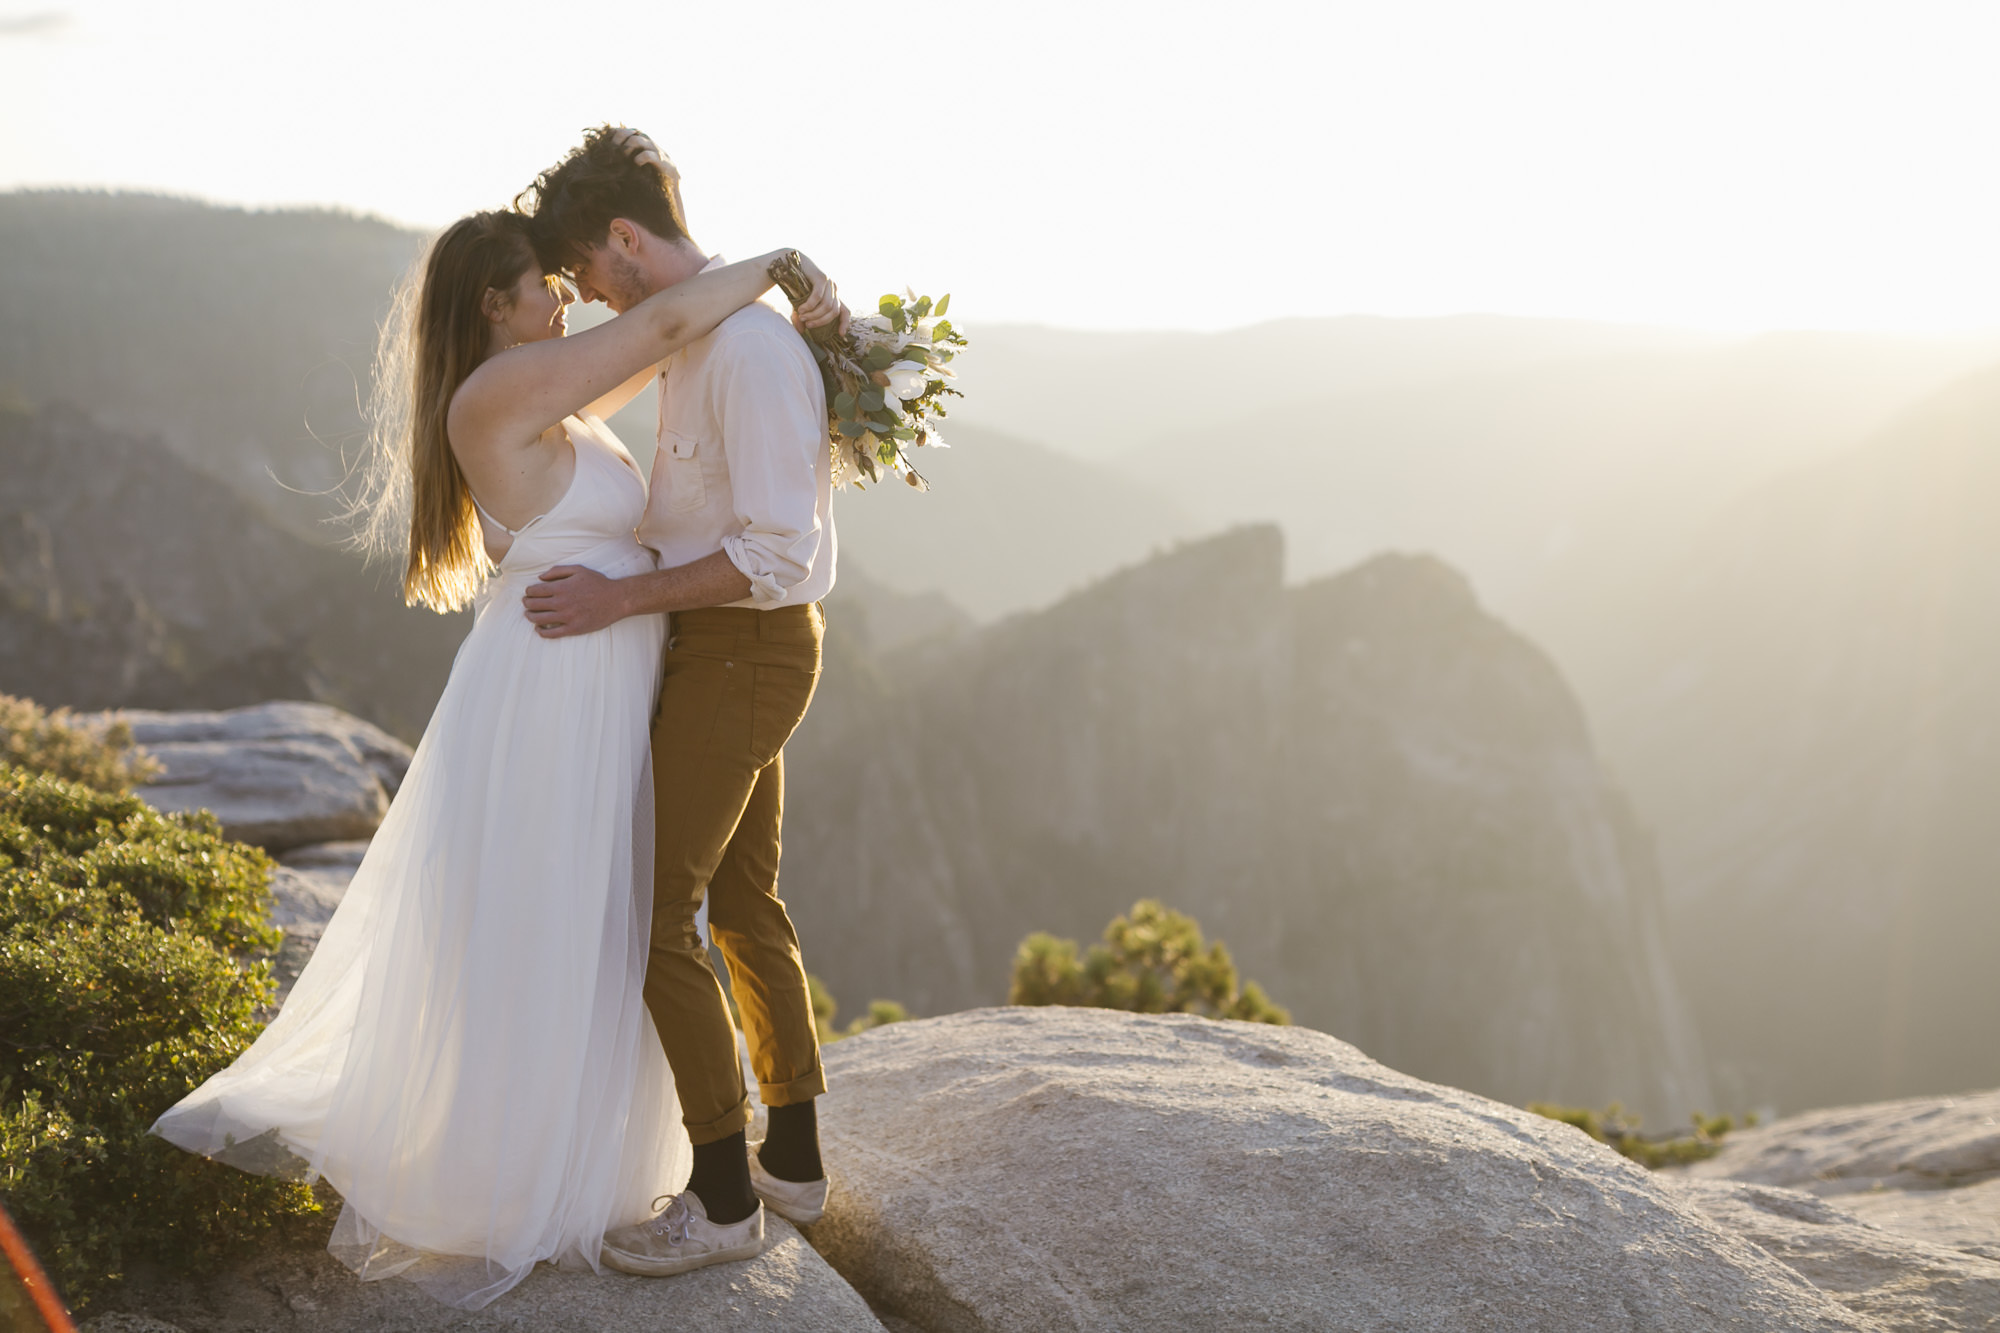 Bride and groom hug after eloping at Taft Point in Yosemite